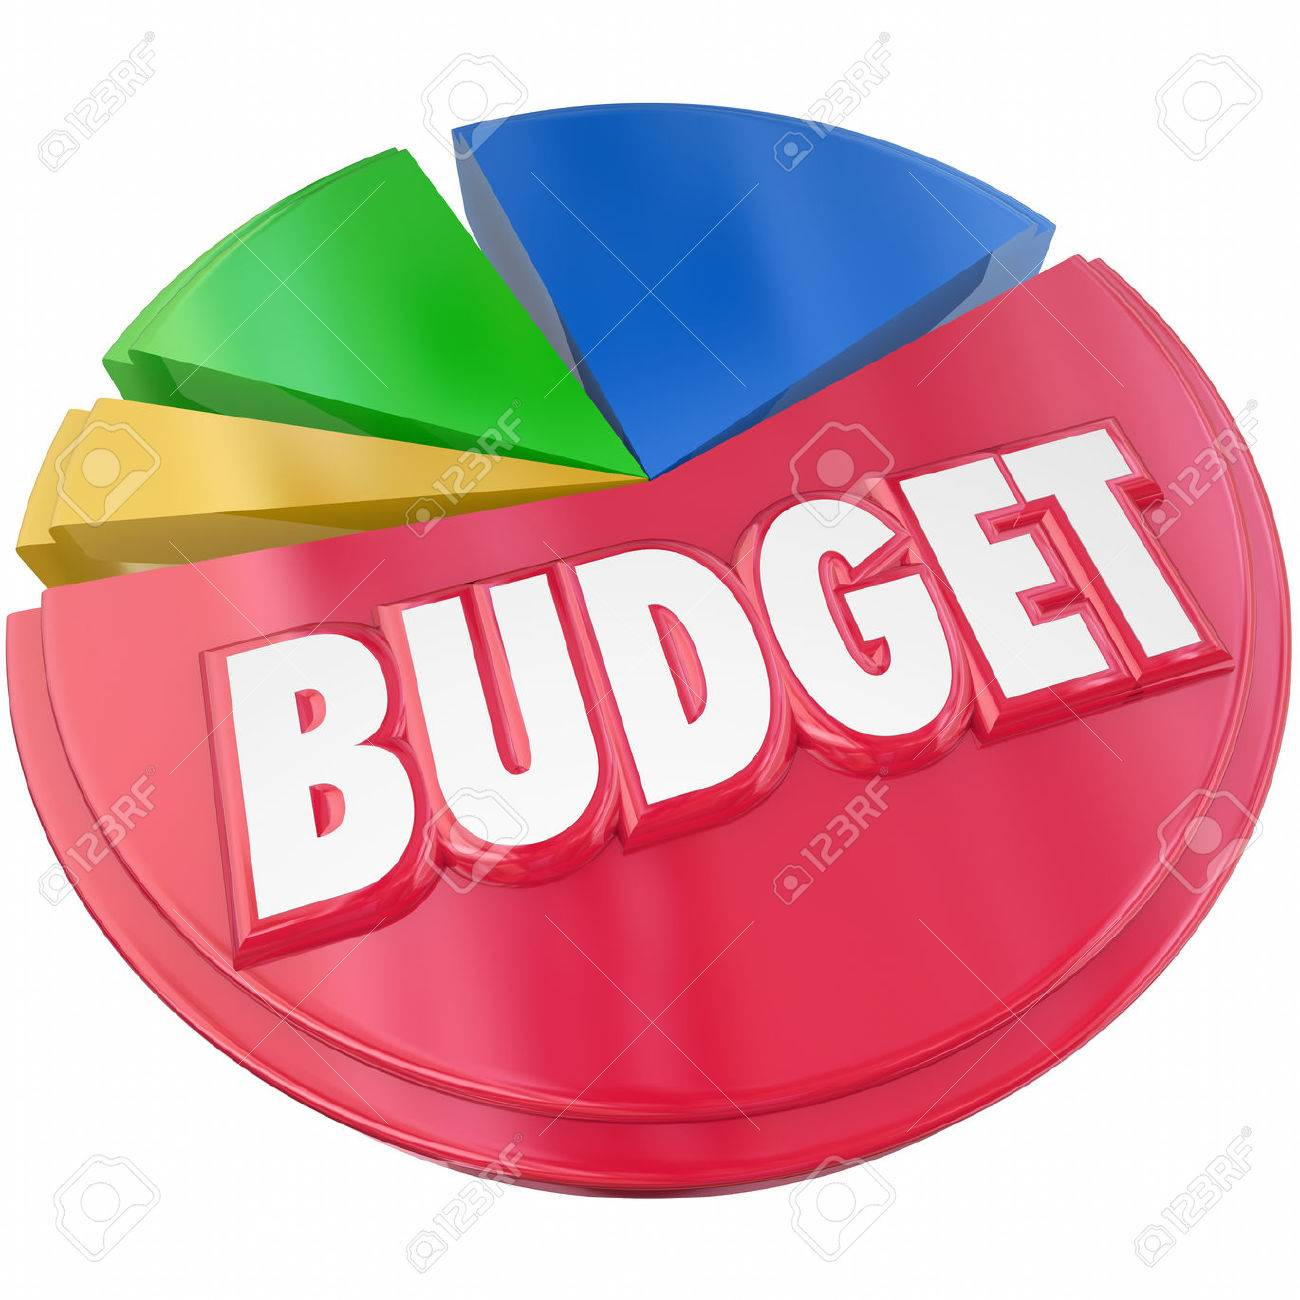 Budget 3d word on a pie chart to illustrate planning your money spending or saving for financial control - 40881744